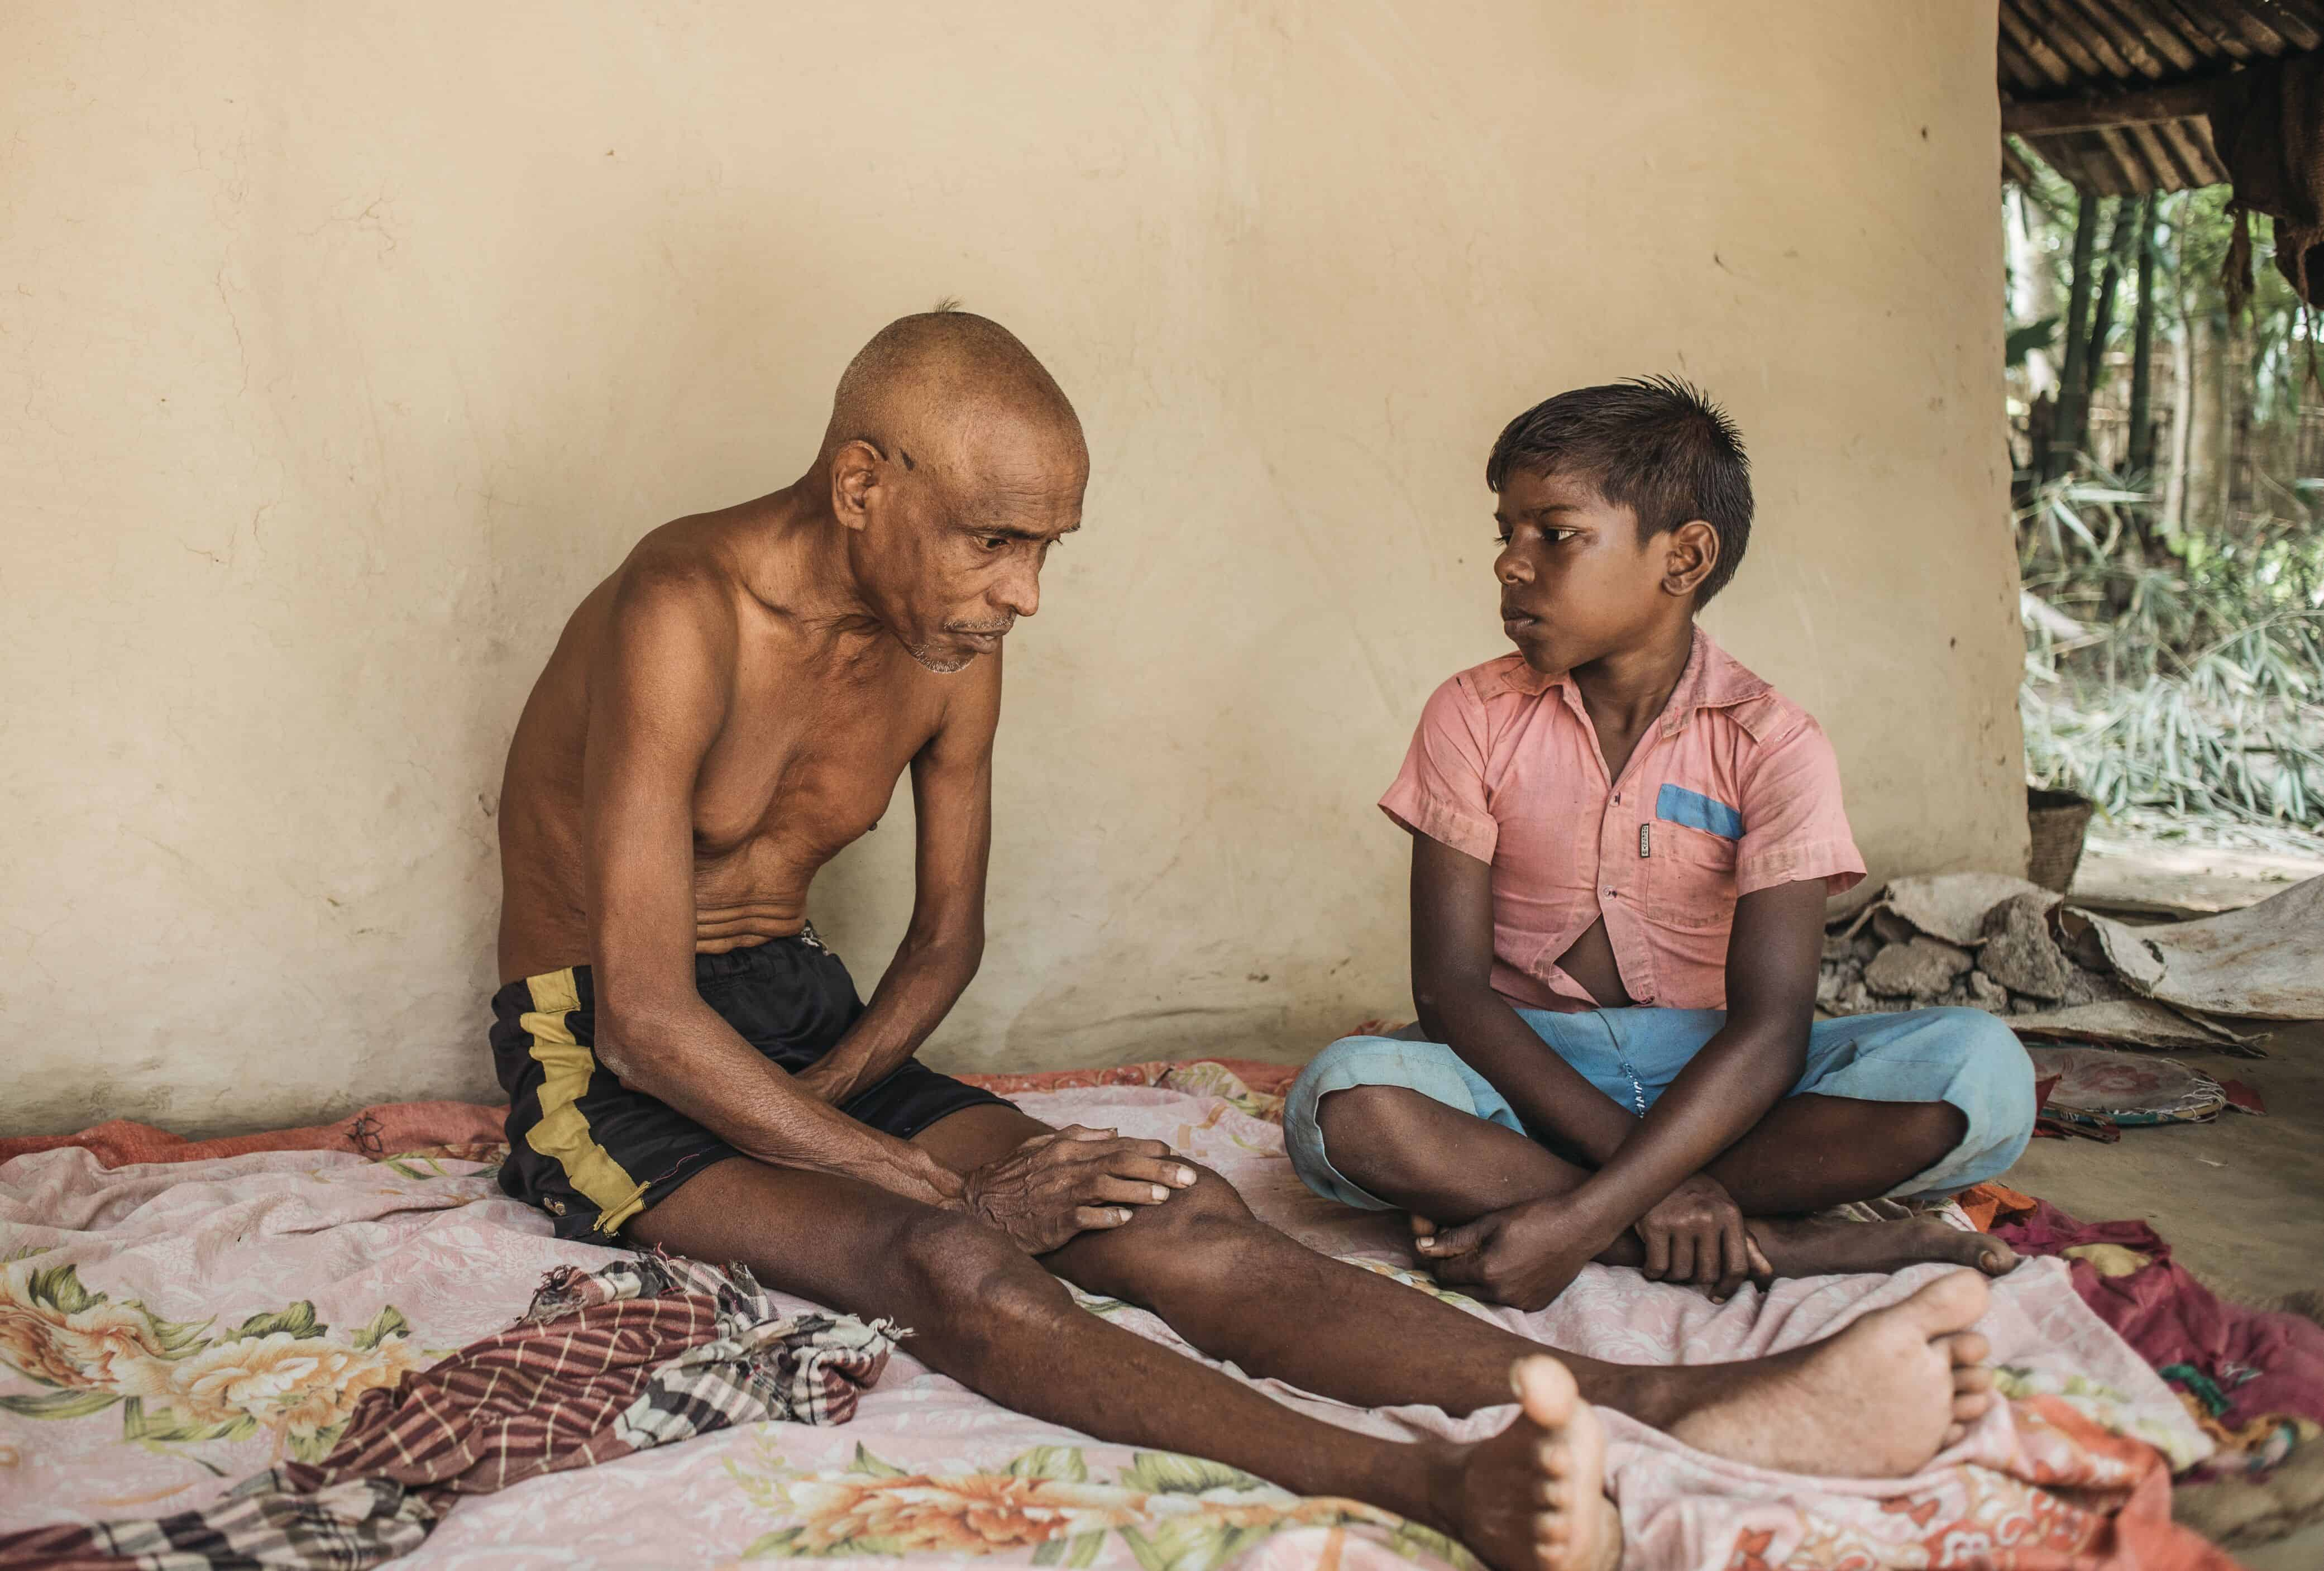 An older man without a shirt sits on a blanket against a tan colored wall, looking down at the ground. A young boy in a pink shirt sitting next to him looks at him.